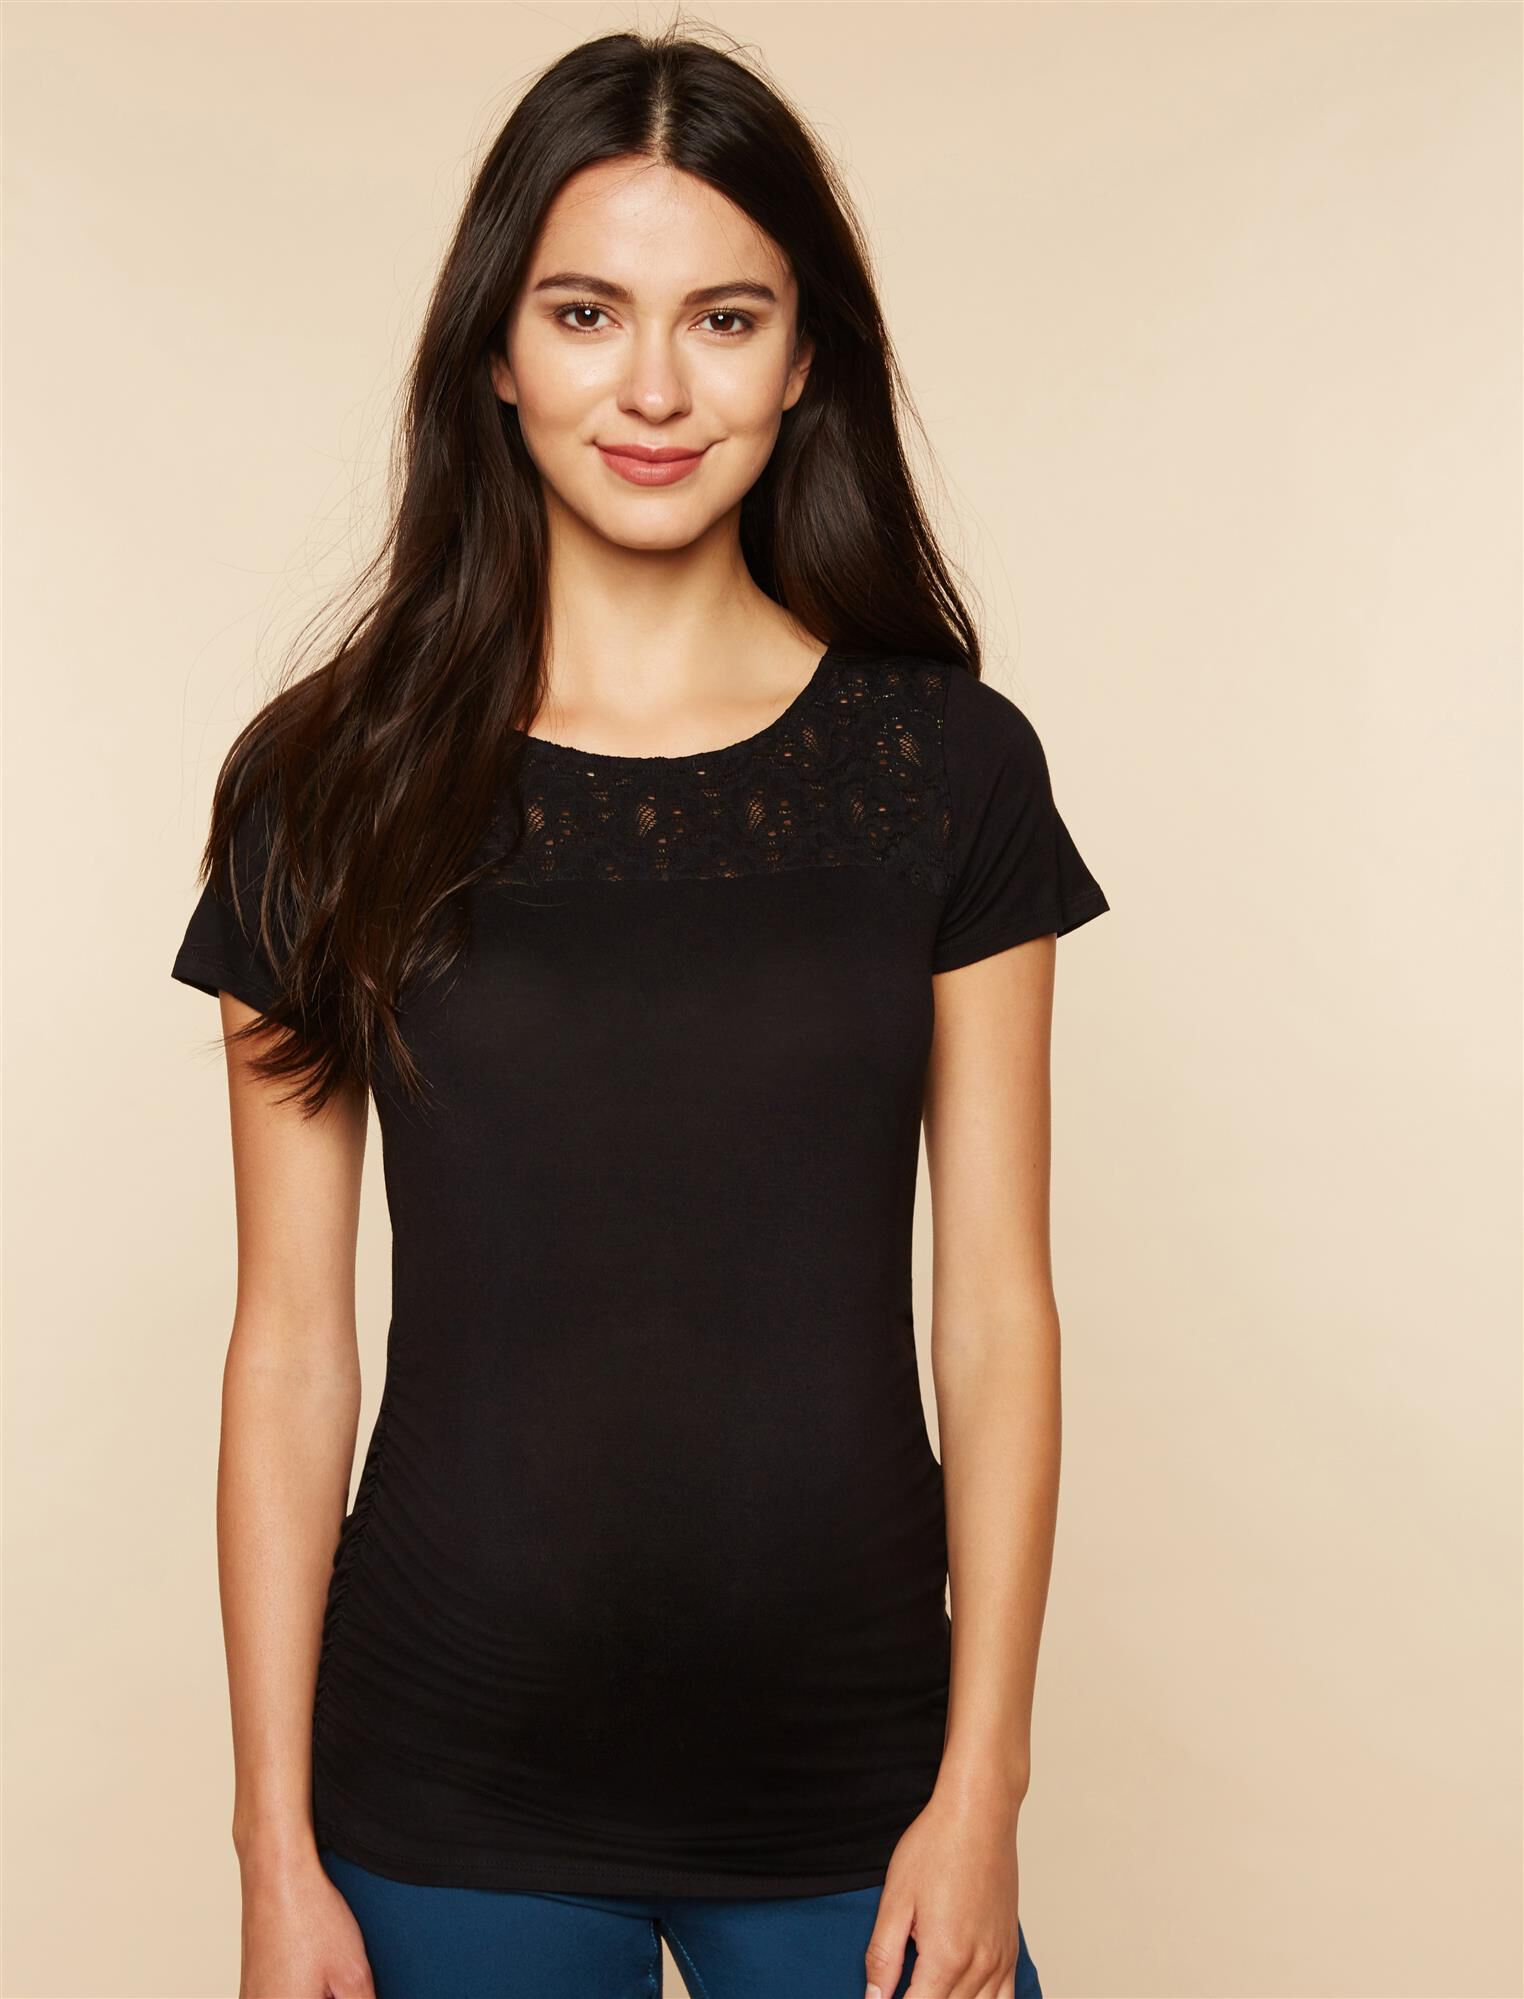 Lace Maternity T Shirt